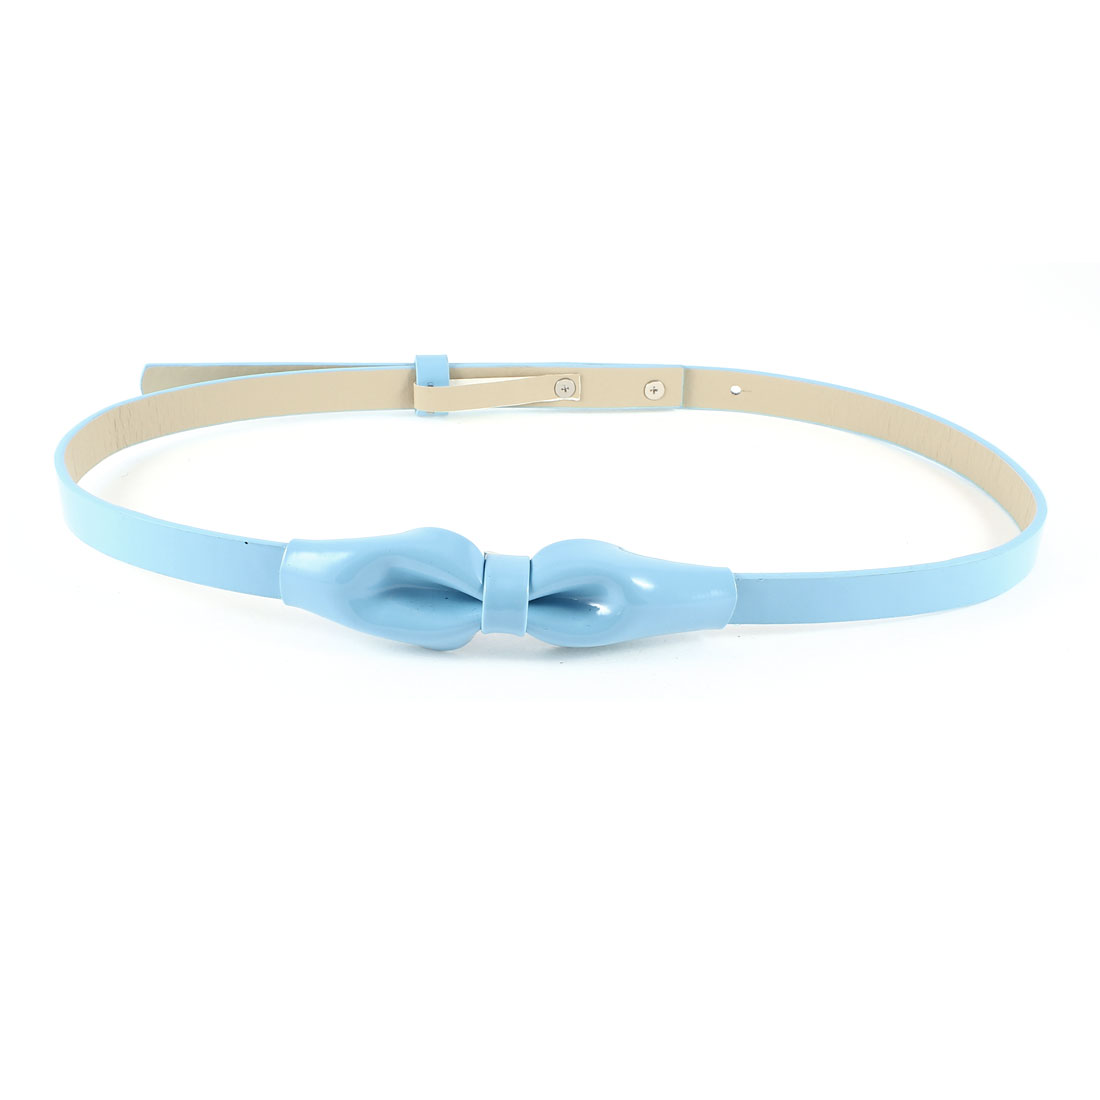 Lady Press Button 5 Hole Faux Leather Adjustable Slim Belt Light Blue